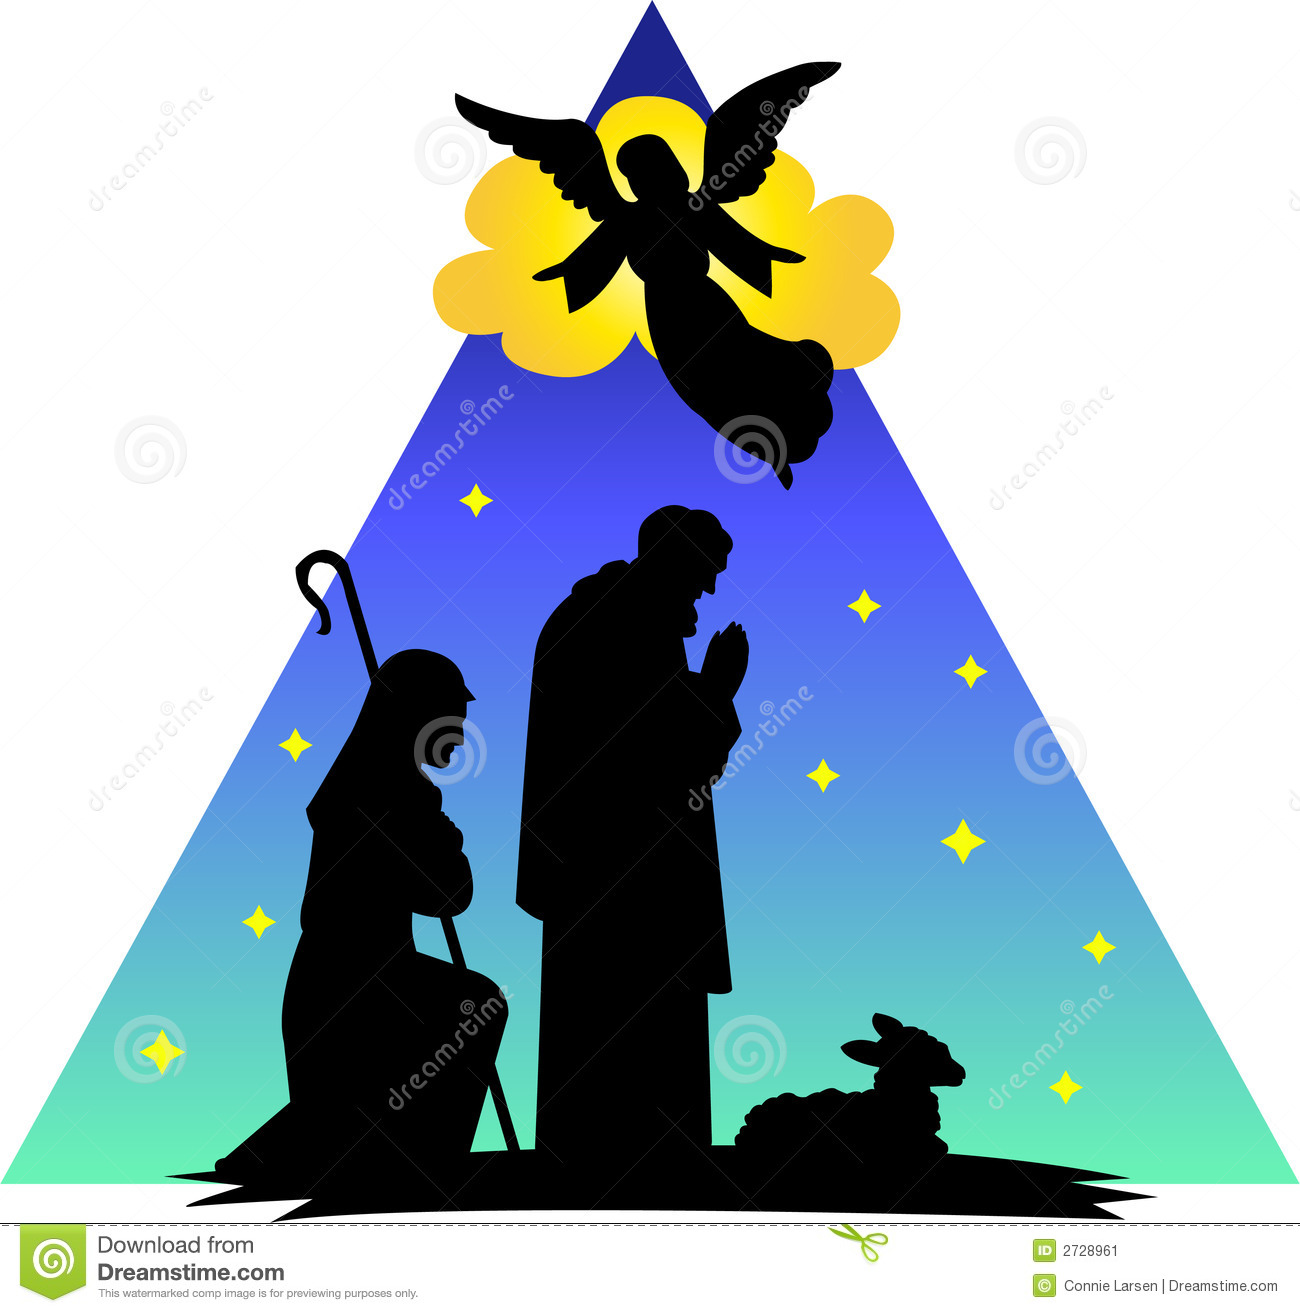 Angels appear to shepherds clipart.